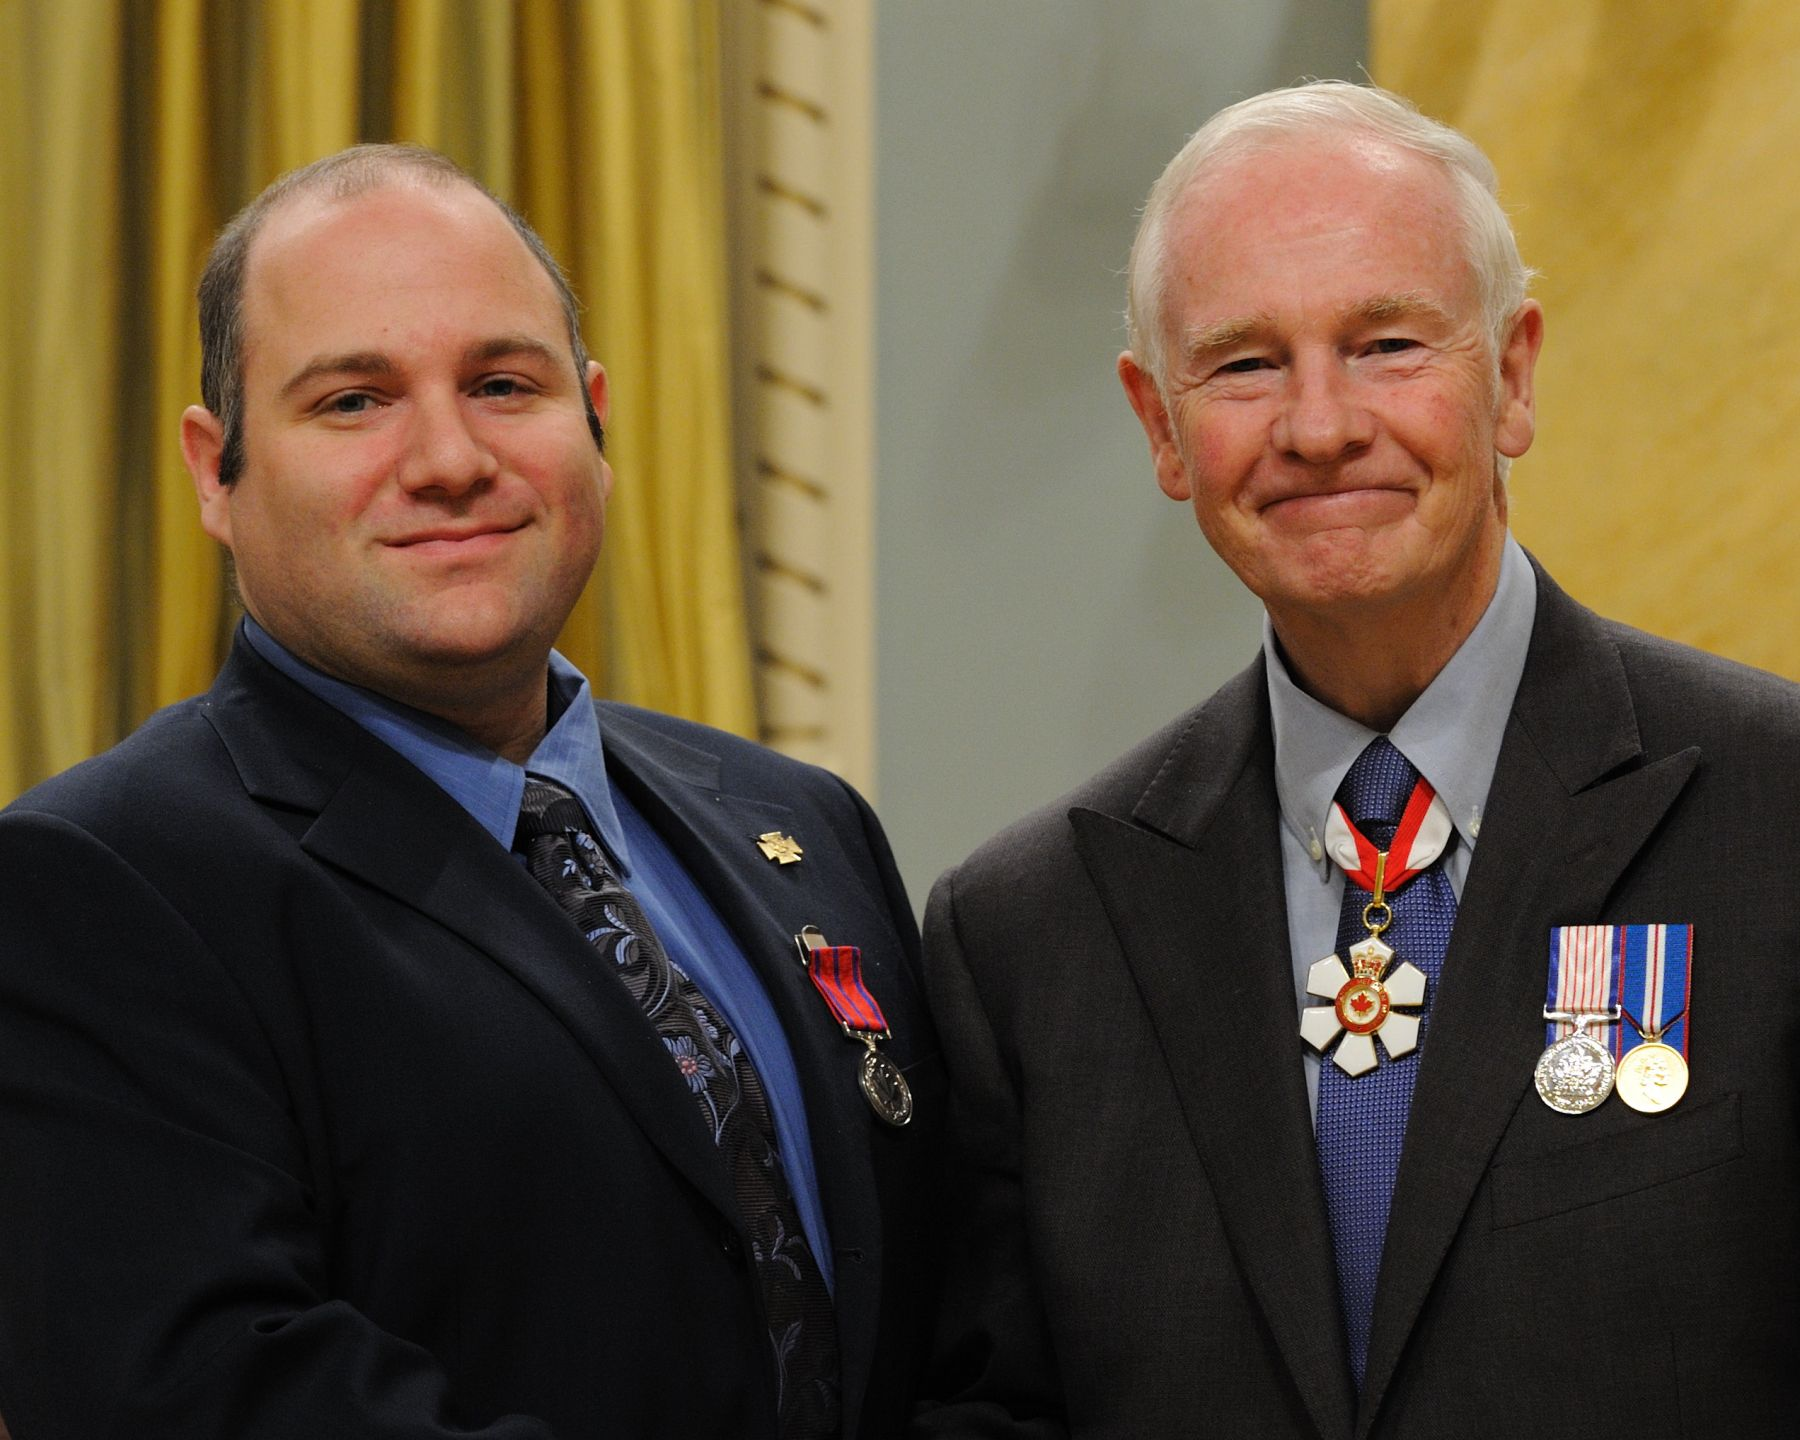 On August 1, 2005, Frédéric Dufresne, M.B. (Trois-Rivières, Quebec) risked his life to prevent a young boy from being hit by an oncoming truck, in Sainte-Monique, Quebec. Mr. Dufresne and his Scout troop were at a roadside rest stop when they noticed a three-year-old boy running towards the roadway, with his father trying to catch him from behind. As Mr. Dufresne joined the chase, the boy ran directly into the path of a transport truck filled with logs. Mr. Dufresne sprinted and tackled the boy, rolling with him until they cleared the road, just as the truck whizzed by.